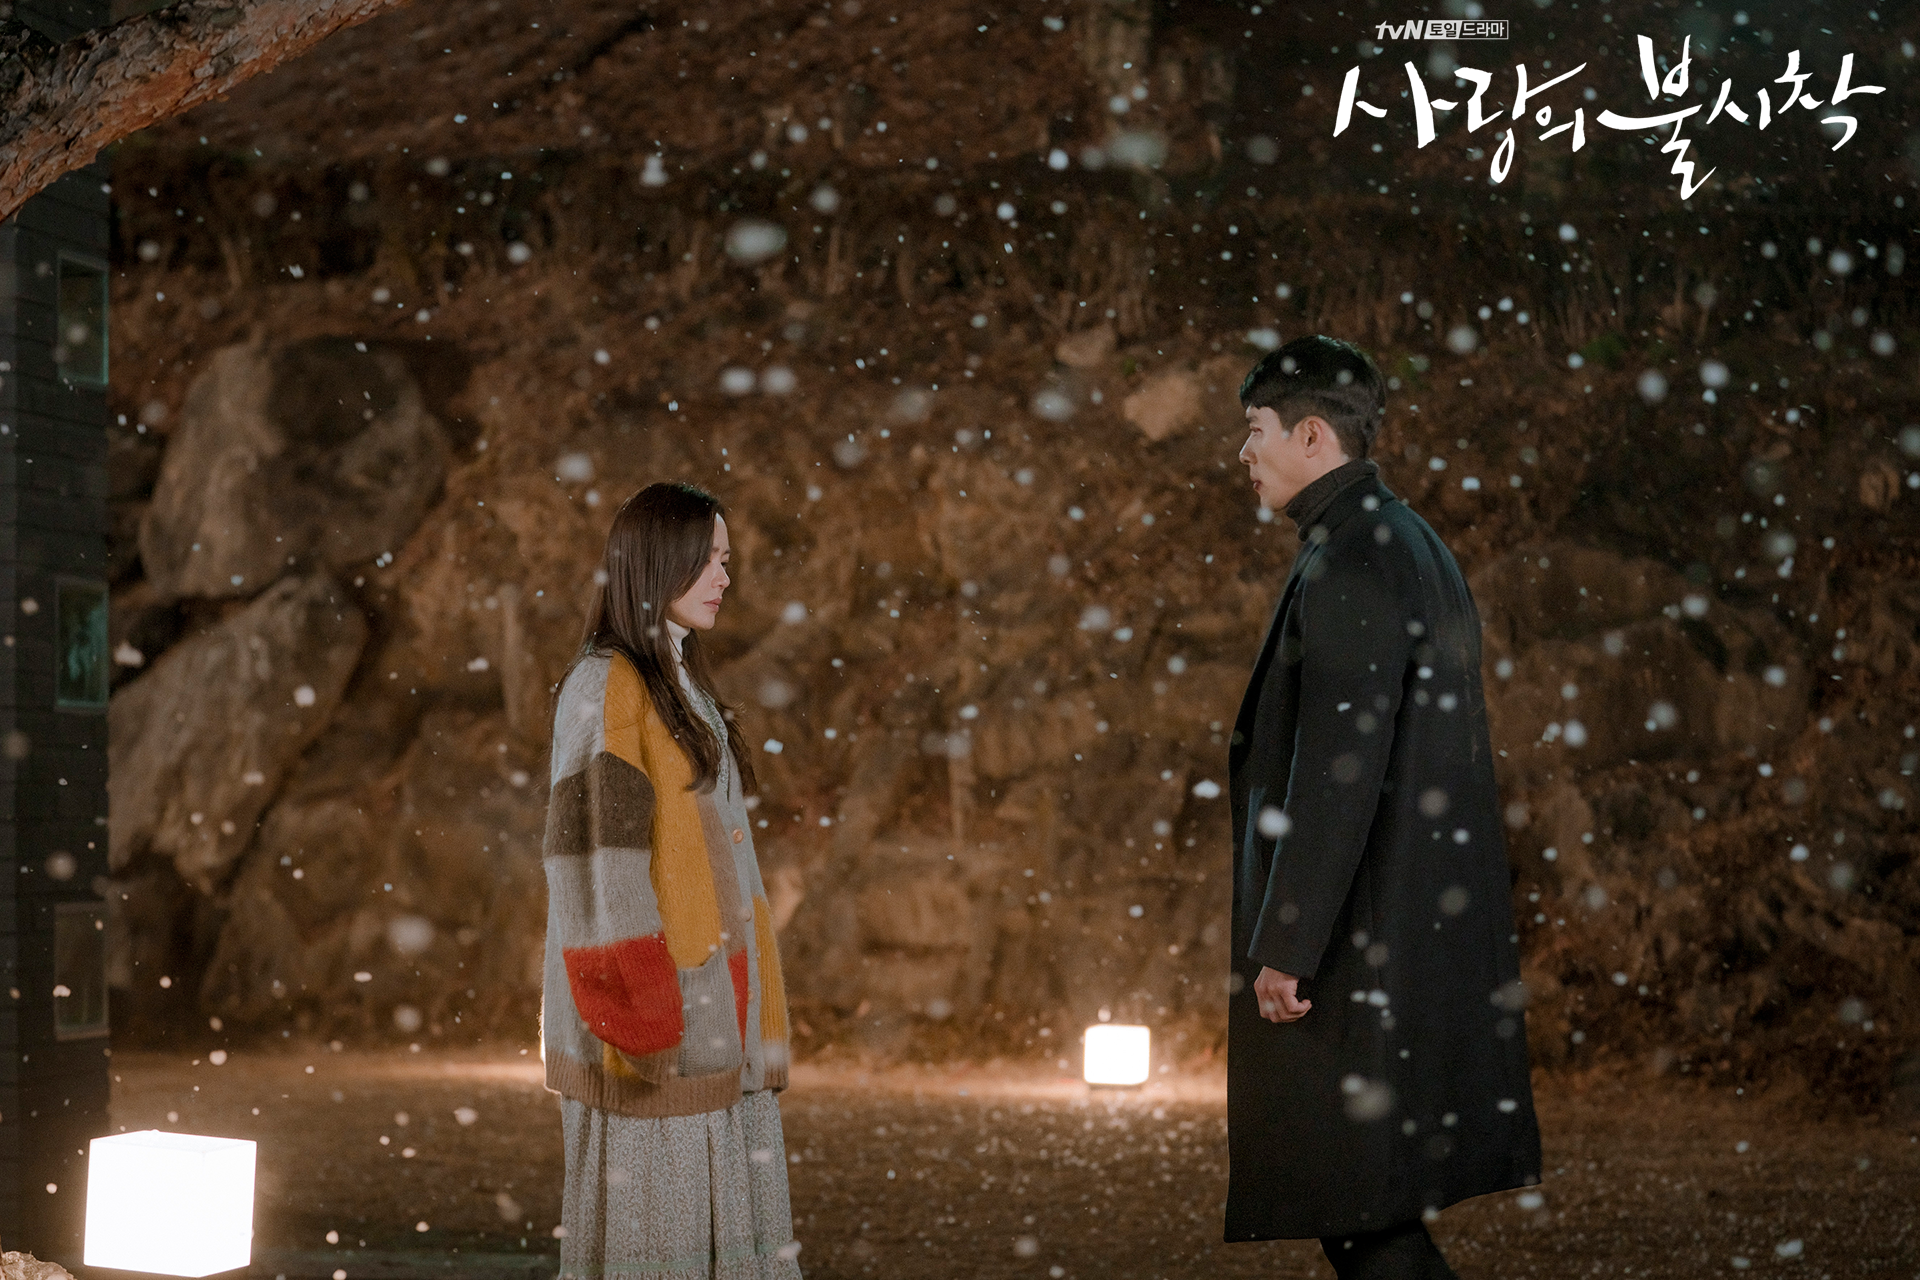 Crash Landing on You Captain Ri Jeong-hyeok and Yoon Se-ri in the snow episode 8